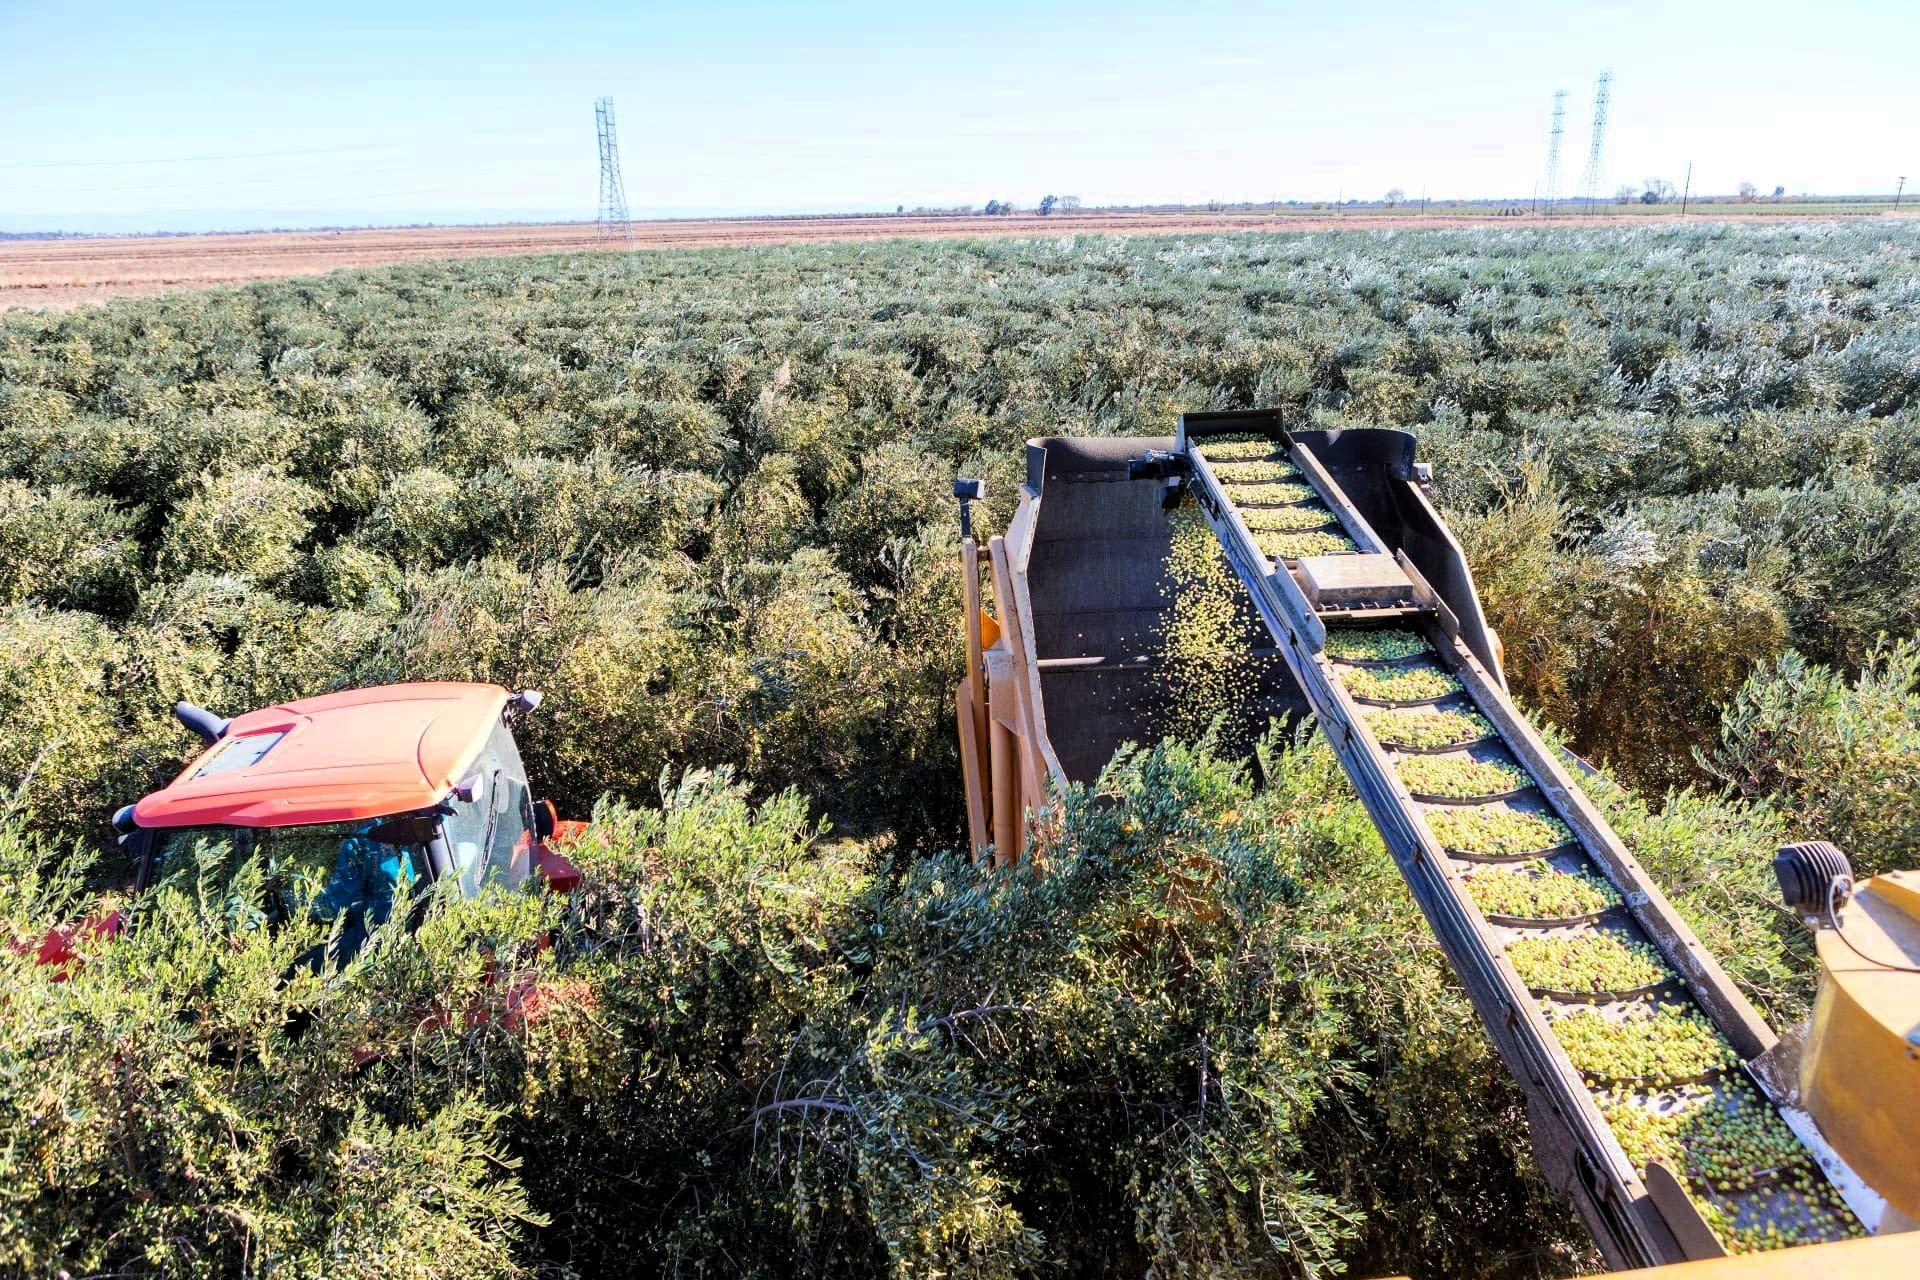 north-america-profiles-production-the-best-olive-oils-family-behind-organic-roots-adapts-as-california-drought-refuses-to-break-olive-oil-times